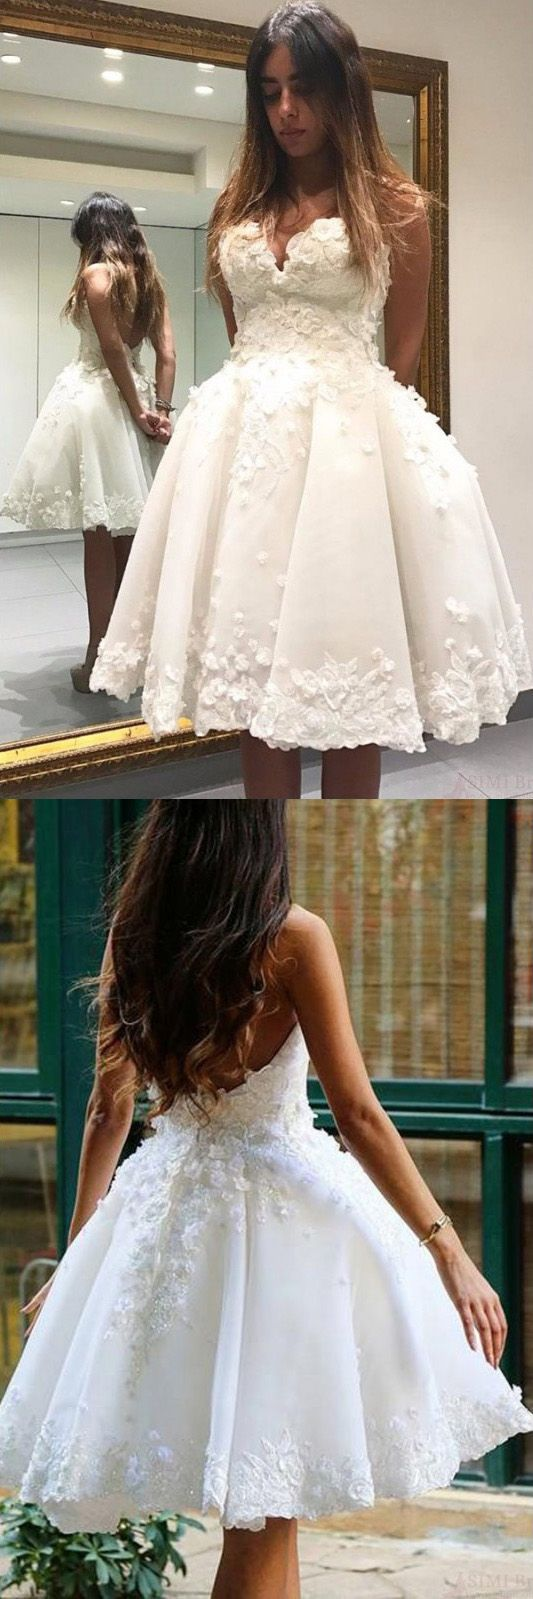 homecoming dresses,short homecoming dresses,cheap homecoming dresses,white homecoming dresses,elegant homecoming dresses